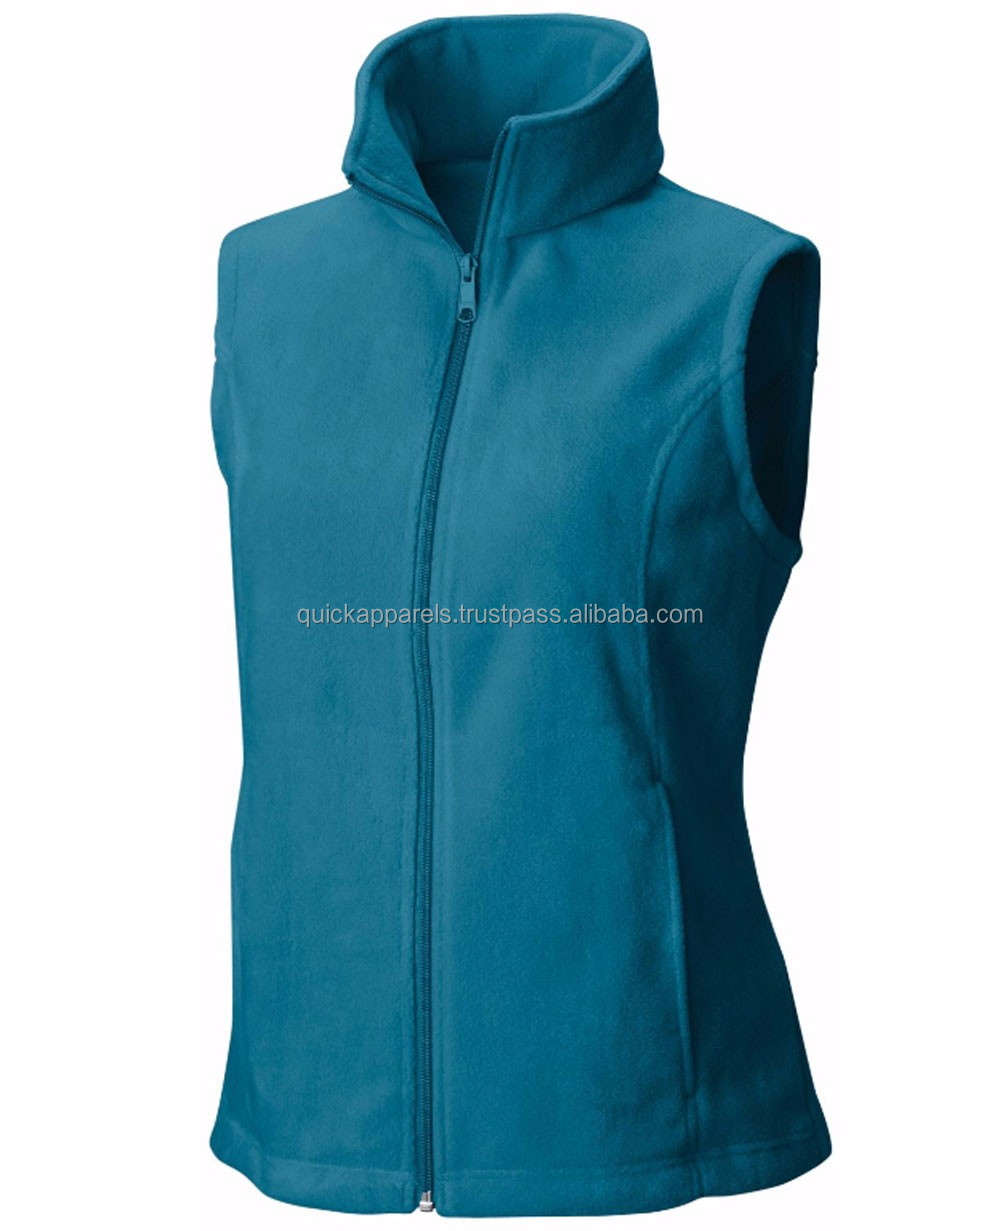 Polar Fleece Jacket With Elastic Cuff, Polar Fleece Jacket With ...